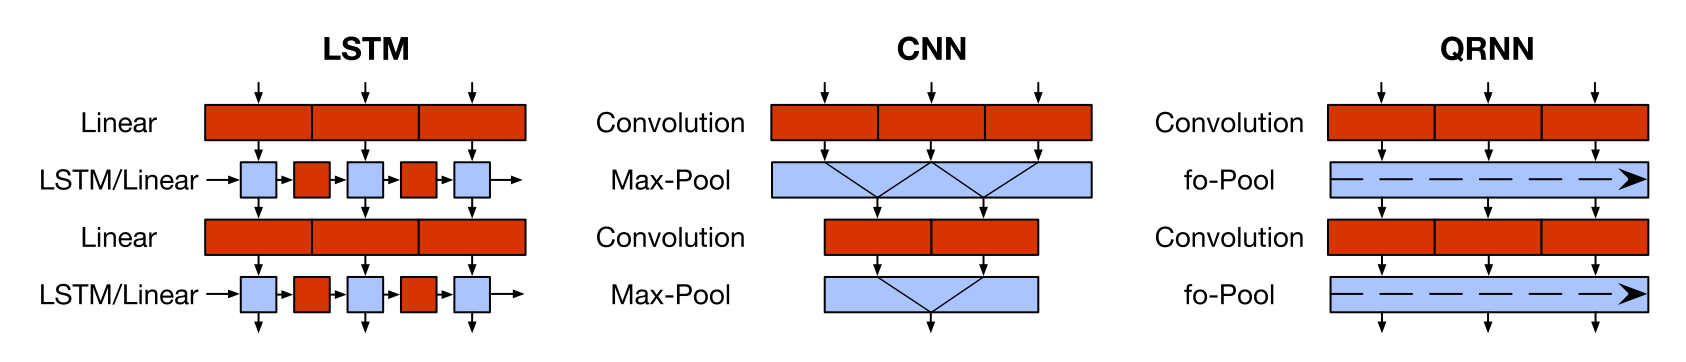 The computation structure of the QRNN compared with an LSTM and a CNN (Bradbury et al., 2019)